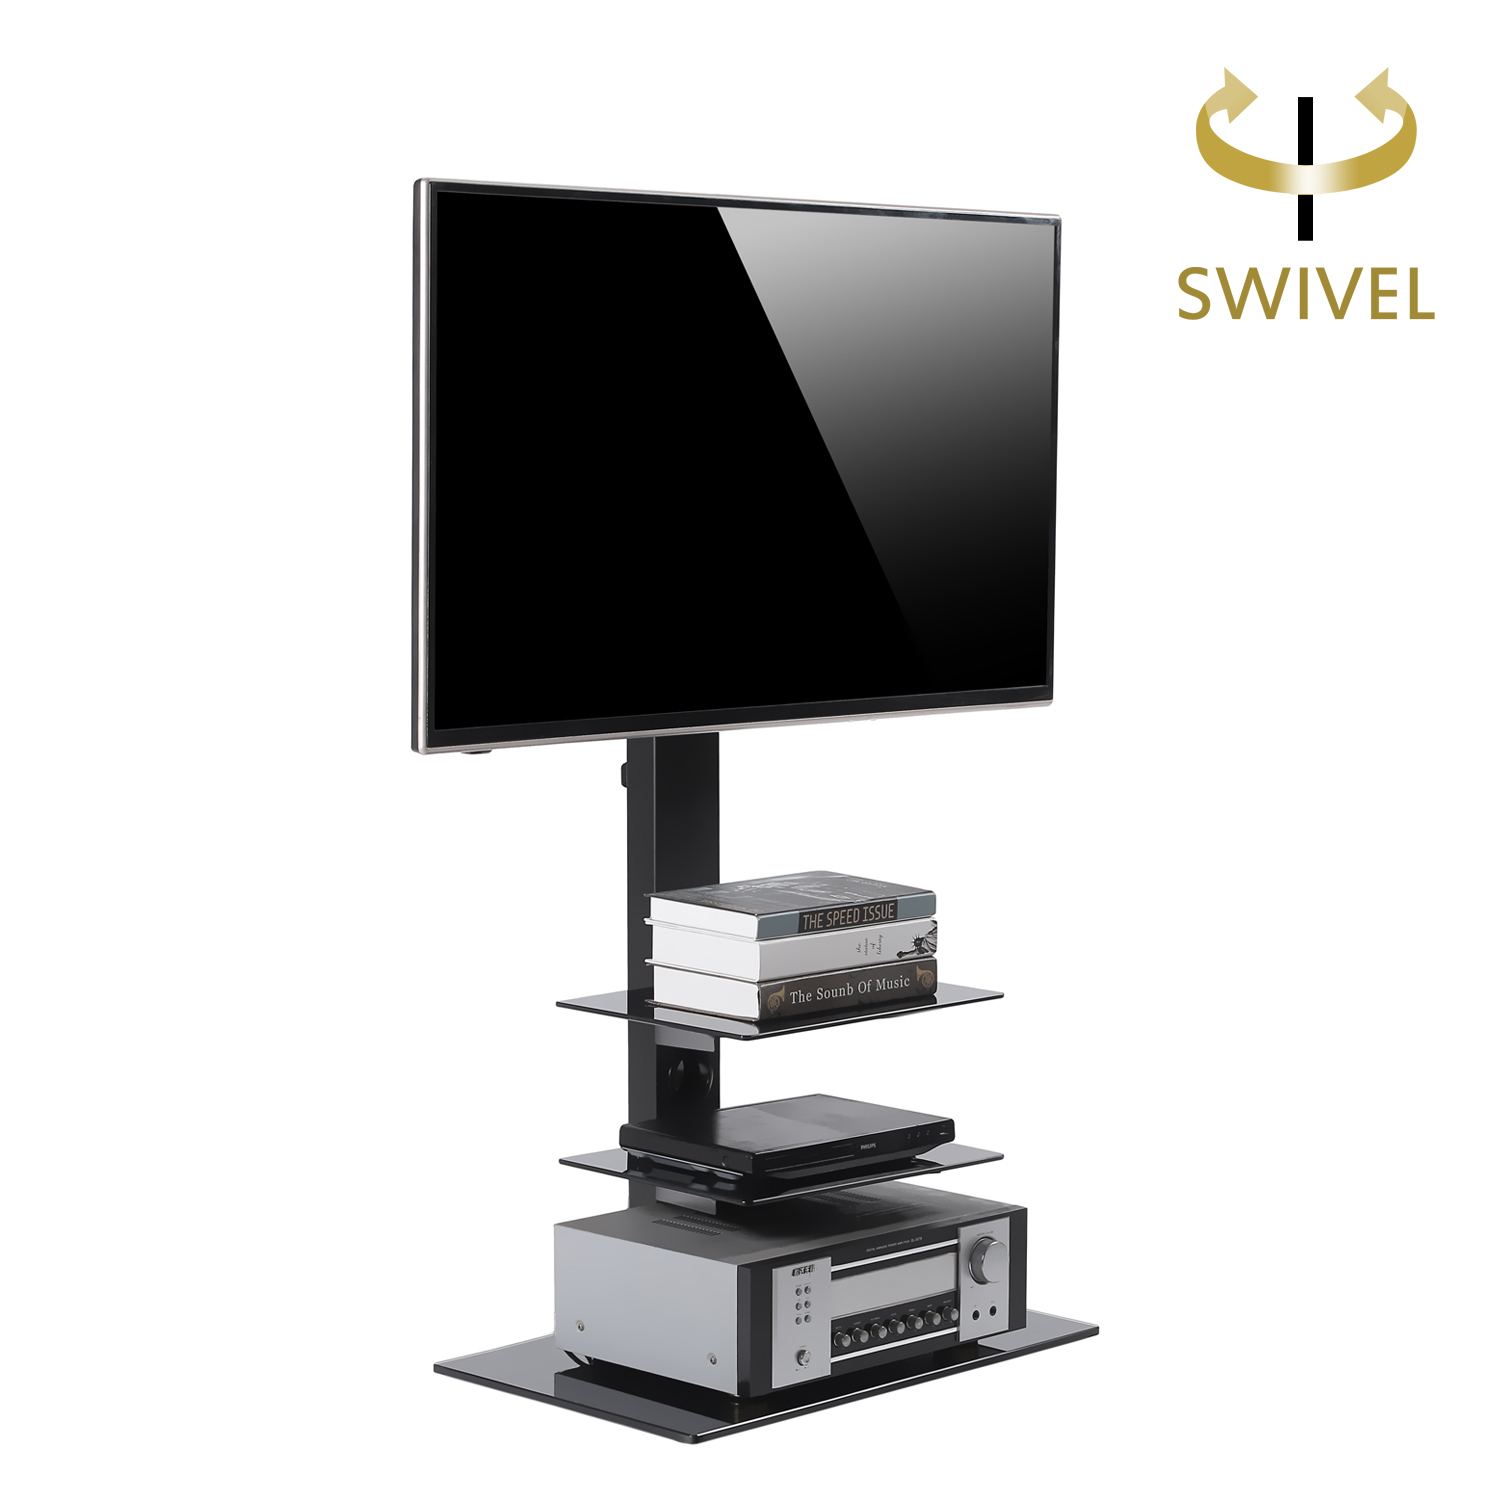 rfiver swivel tv stand with mount for 32 to 65 inch tf2002 3 shelf ebay. Black Bedroom Furniture Sets. Home Design Ideas